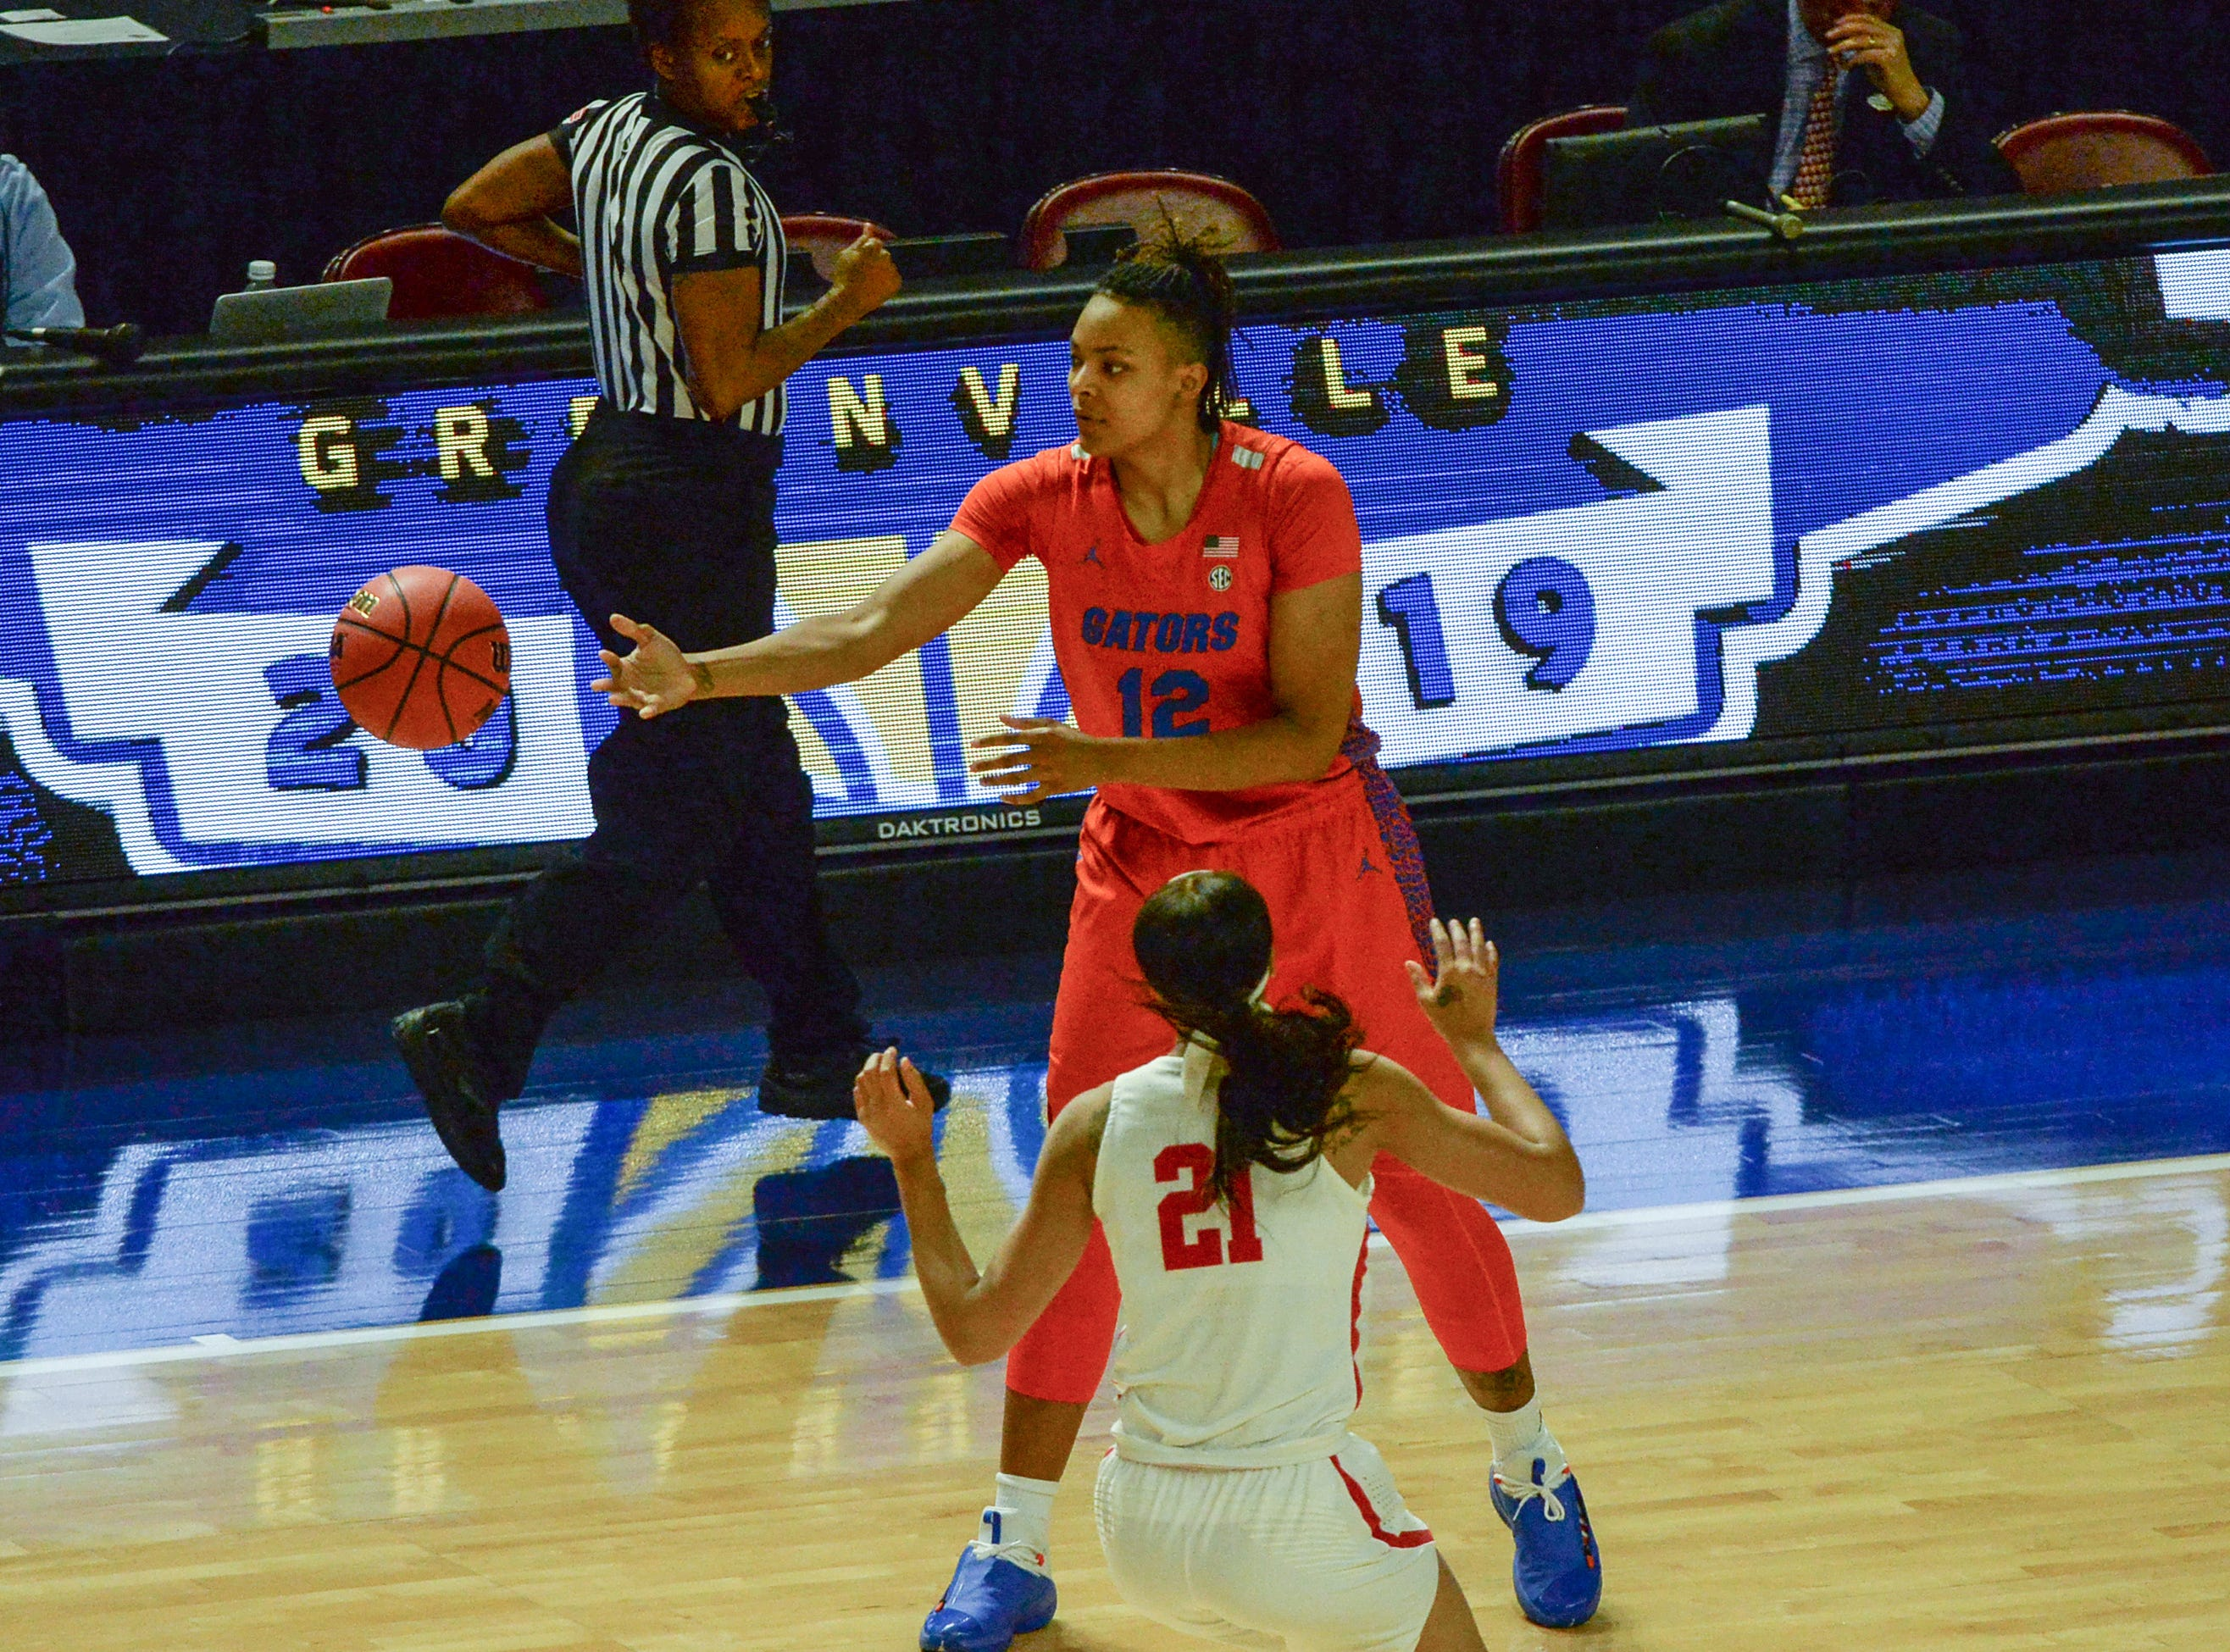 Florida forward Zada Williams (12) passes near Ole Miss freshman Taylor Smith(21) during the first quarter of the Southeastern Conference Women's Tournament game at Bon Secour Wellness Arena in Greenville Wednesday, March 6, 2019.